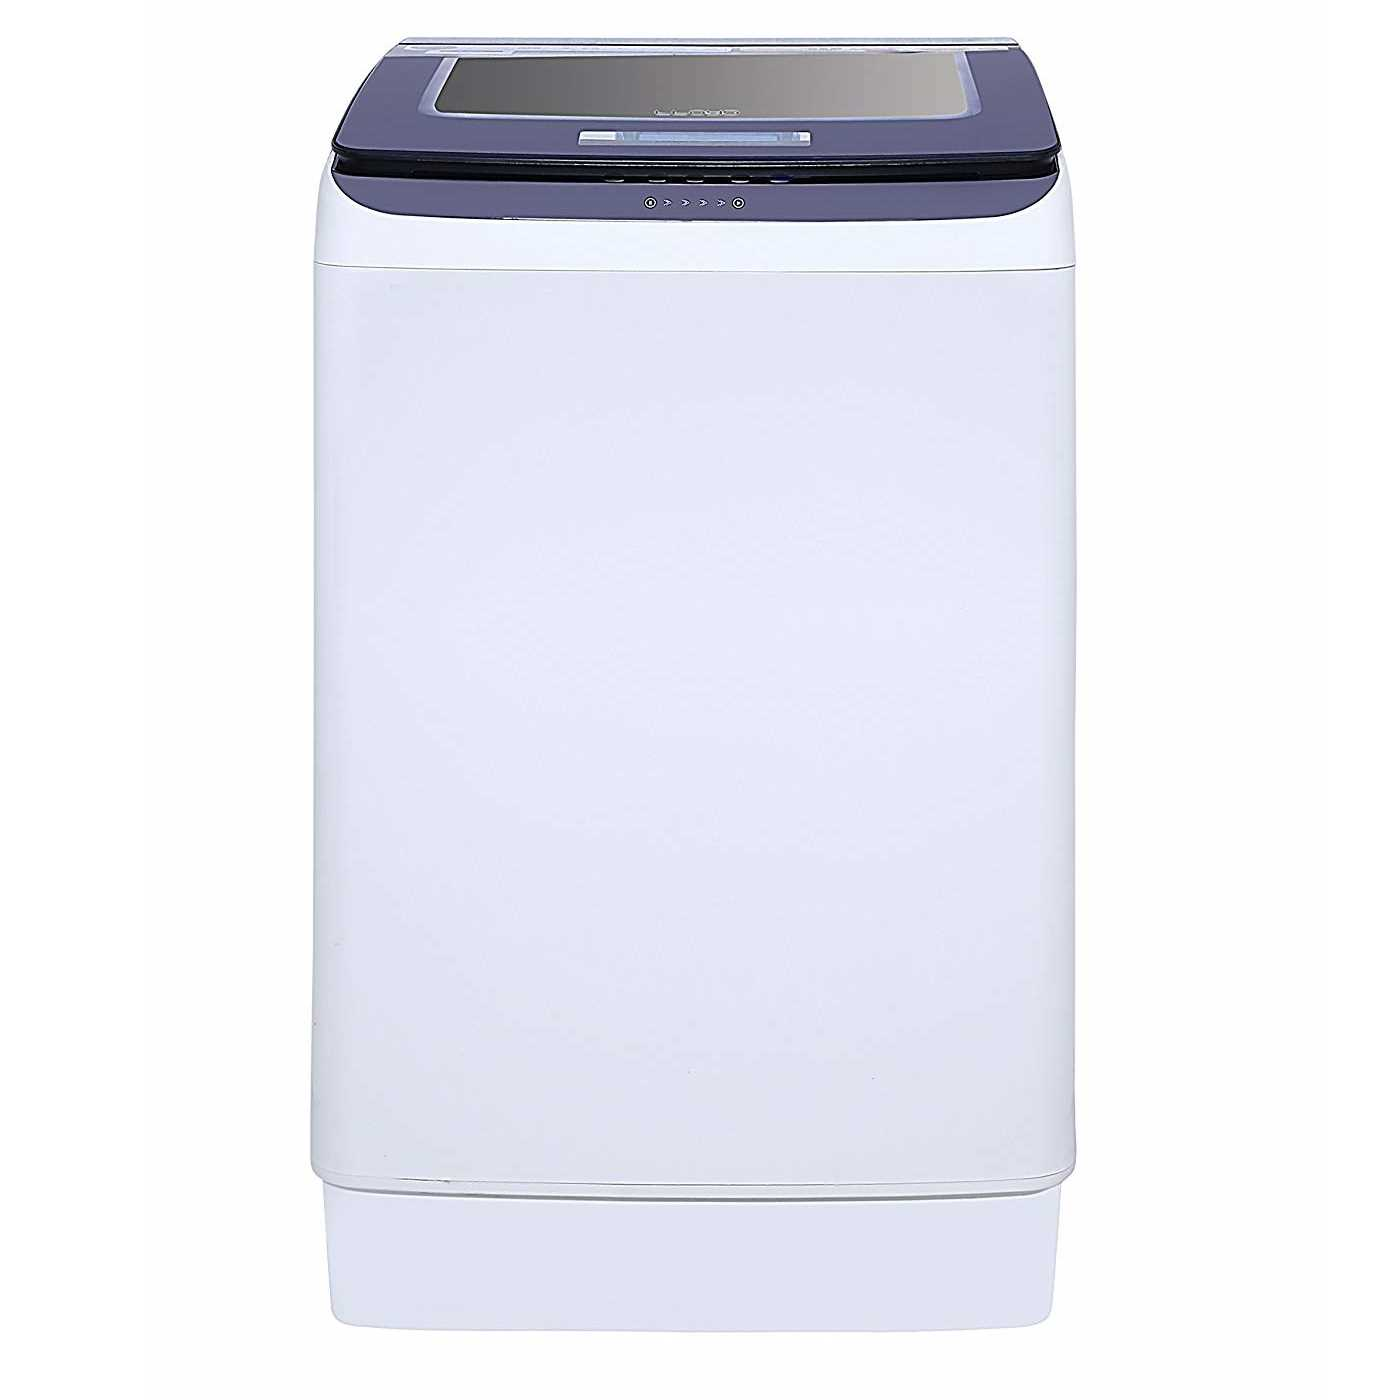 Lloyd TouchWash LWMT75TGS 7.5 Kg Fully Automatic Top Loading Washing Machine